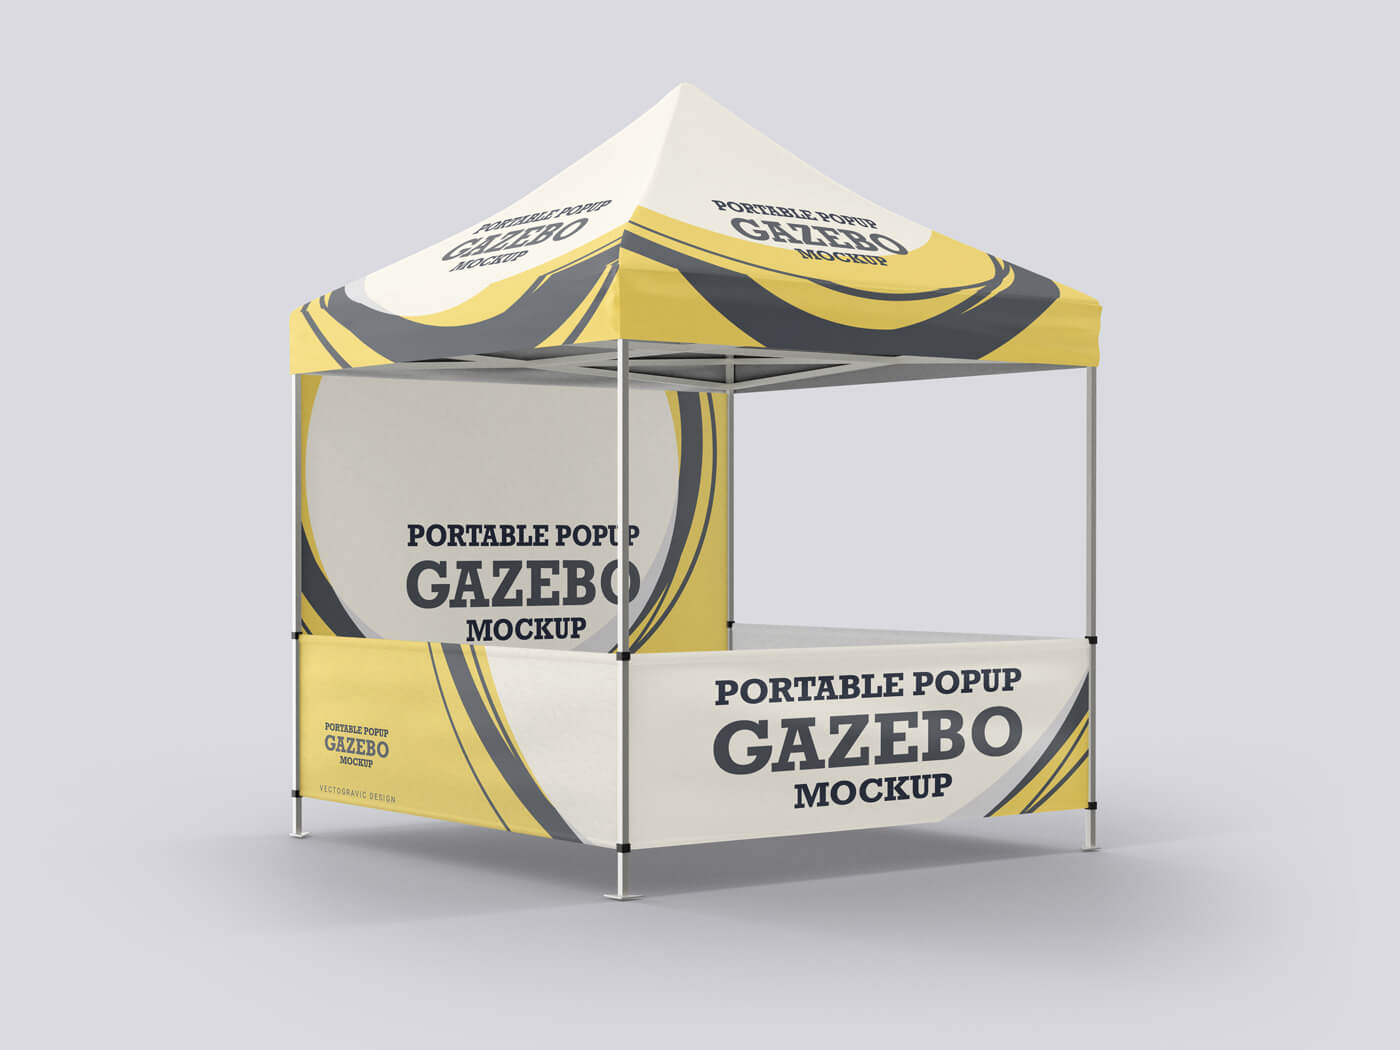 Portable Pop Up Gazebo Mockup